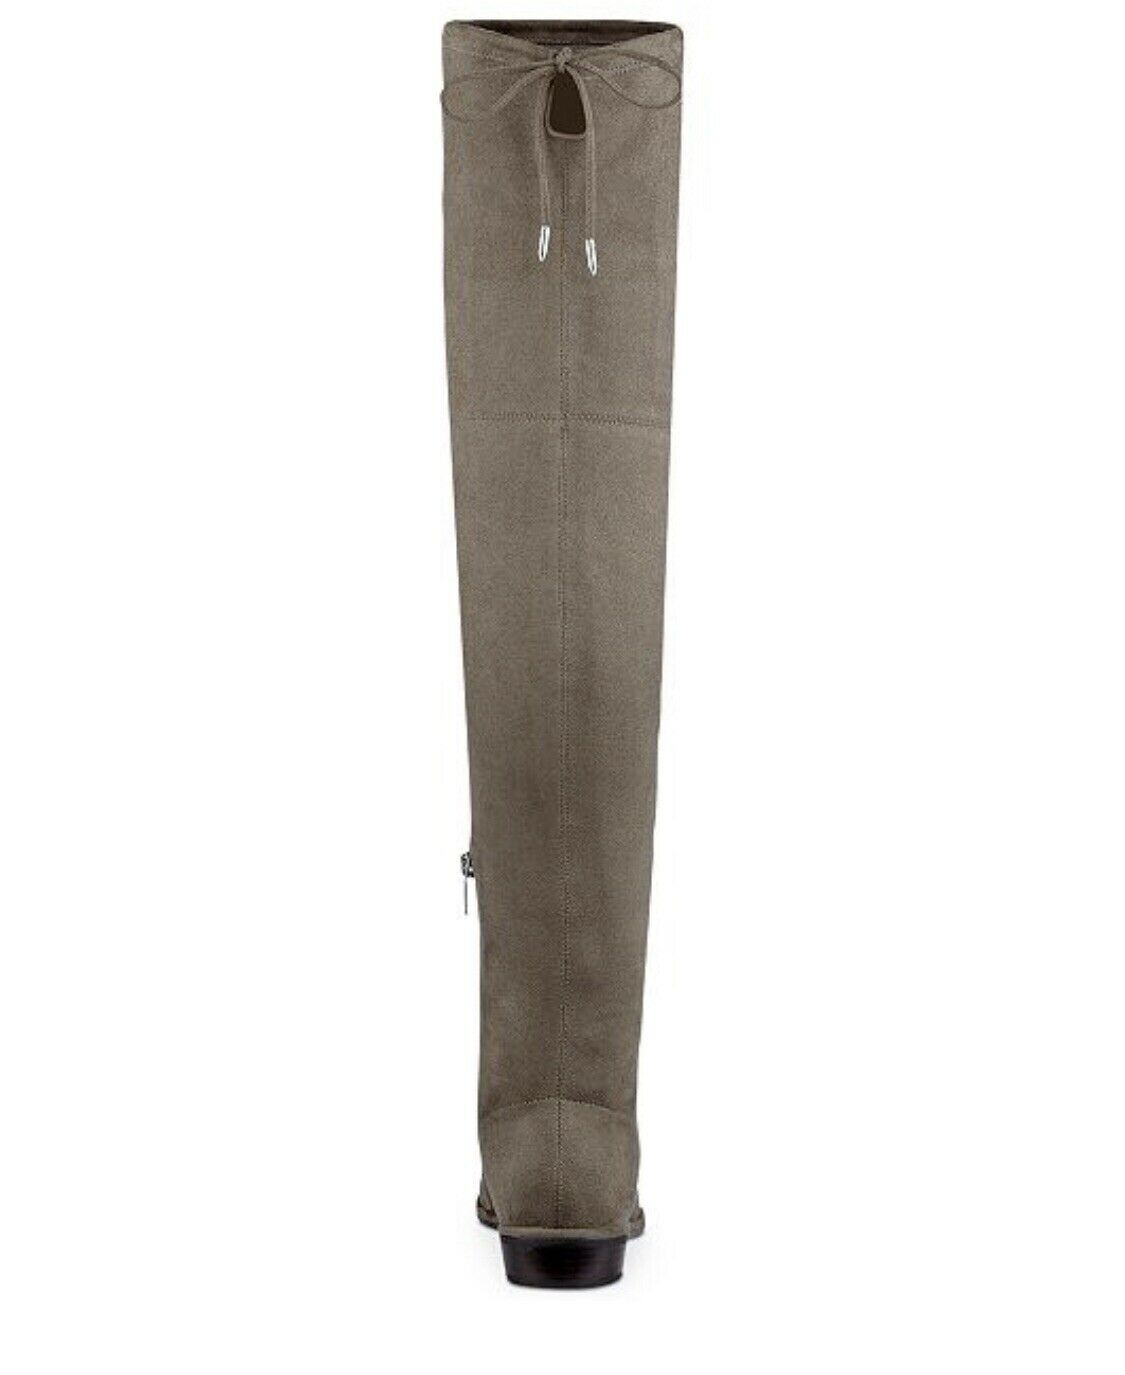 NEW Marc Fisher Women's Humor 2 Over-The-Knee Boots Boots Boots Warm Taupe Sz 7.5M e3f910